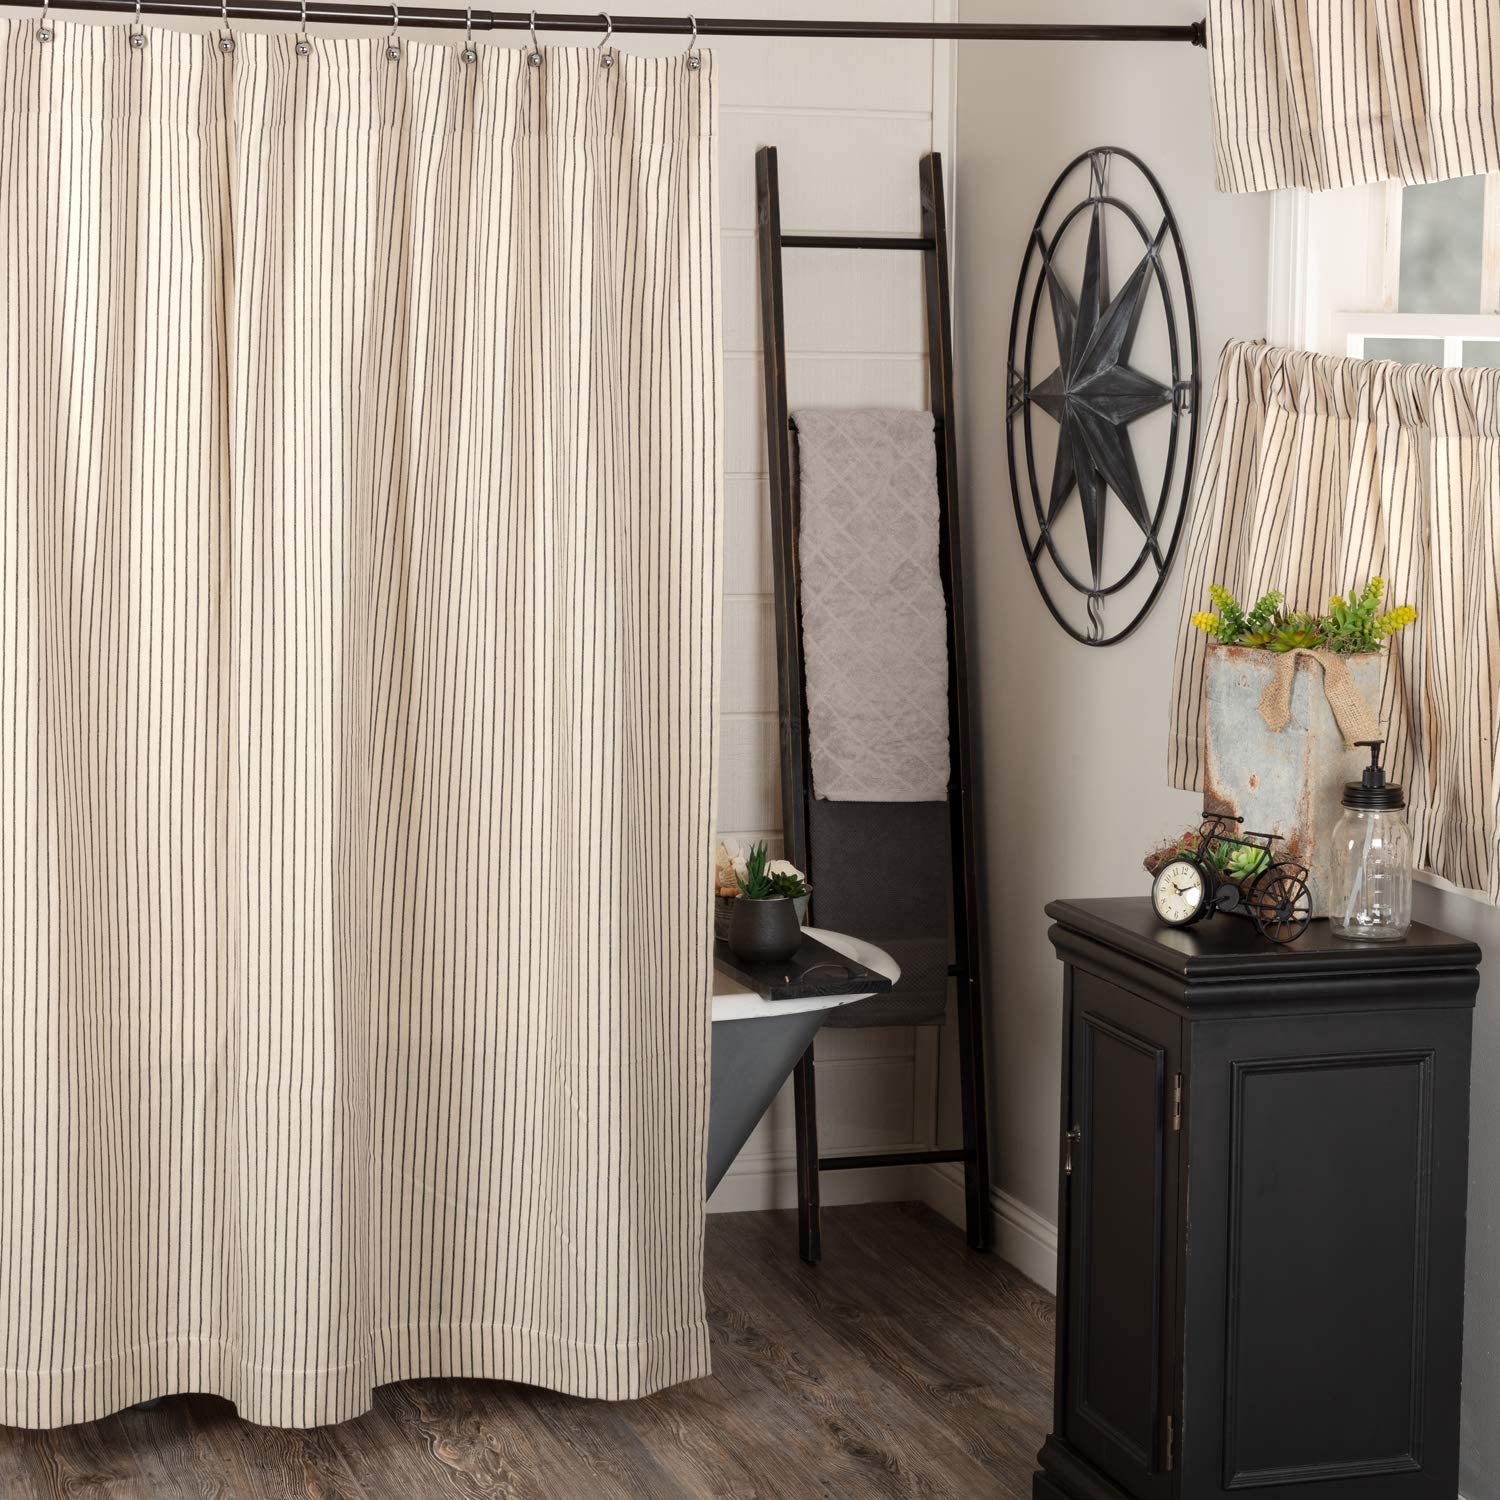 Piper Classics Katie's Vintage Stripe Some reservation Wide Curtain x 72